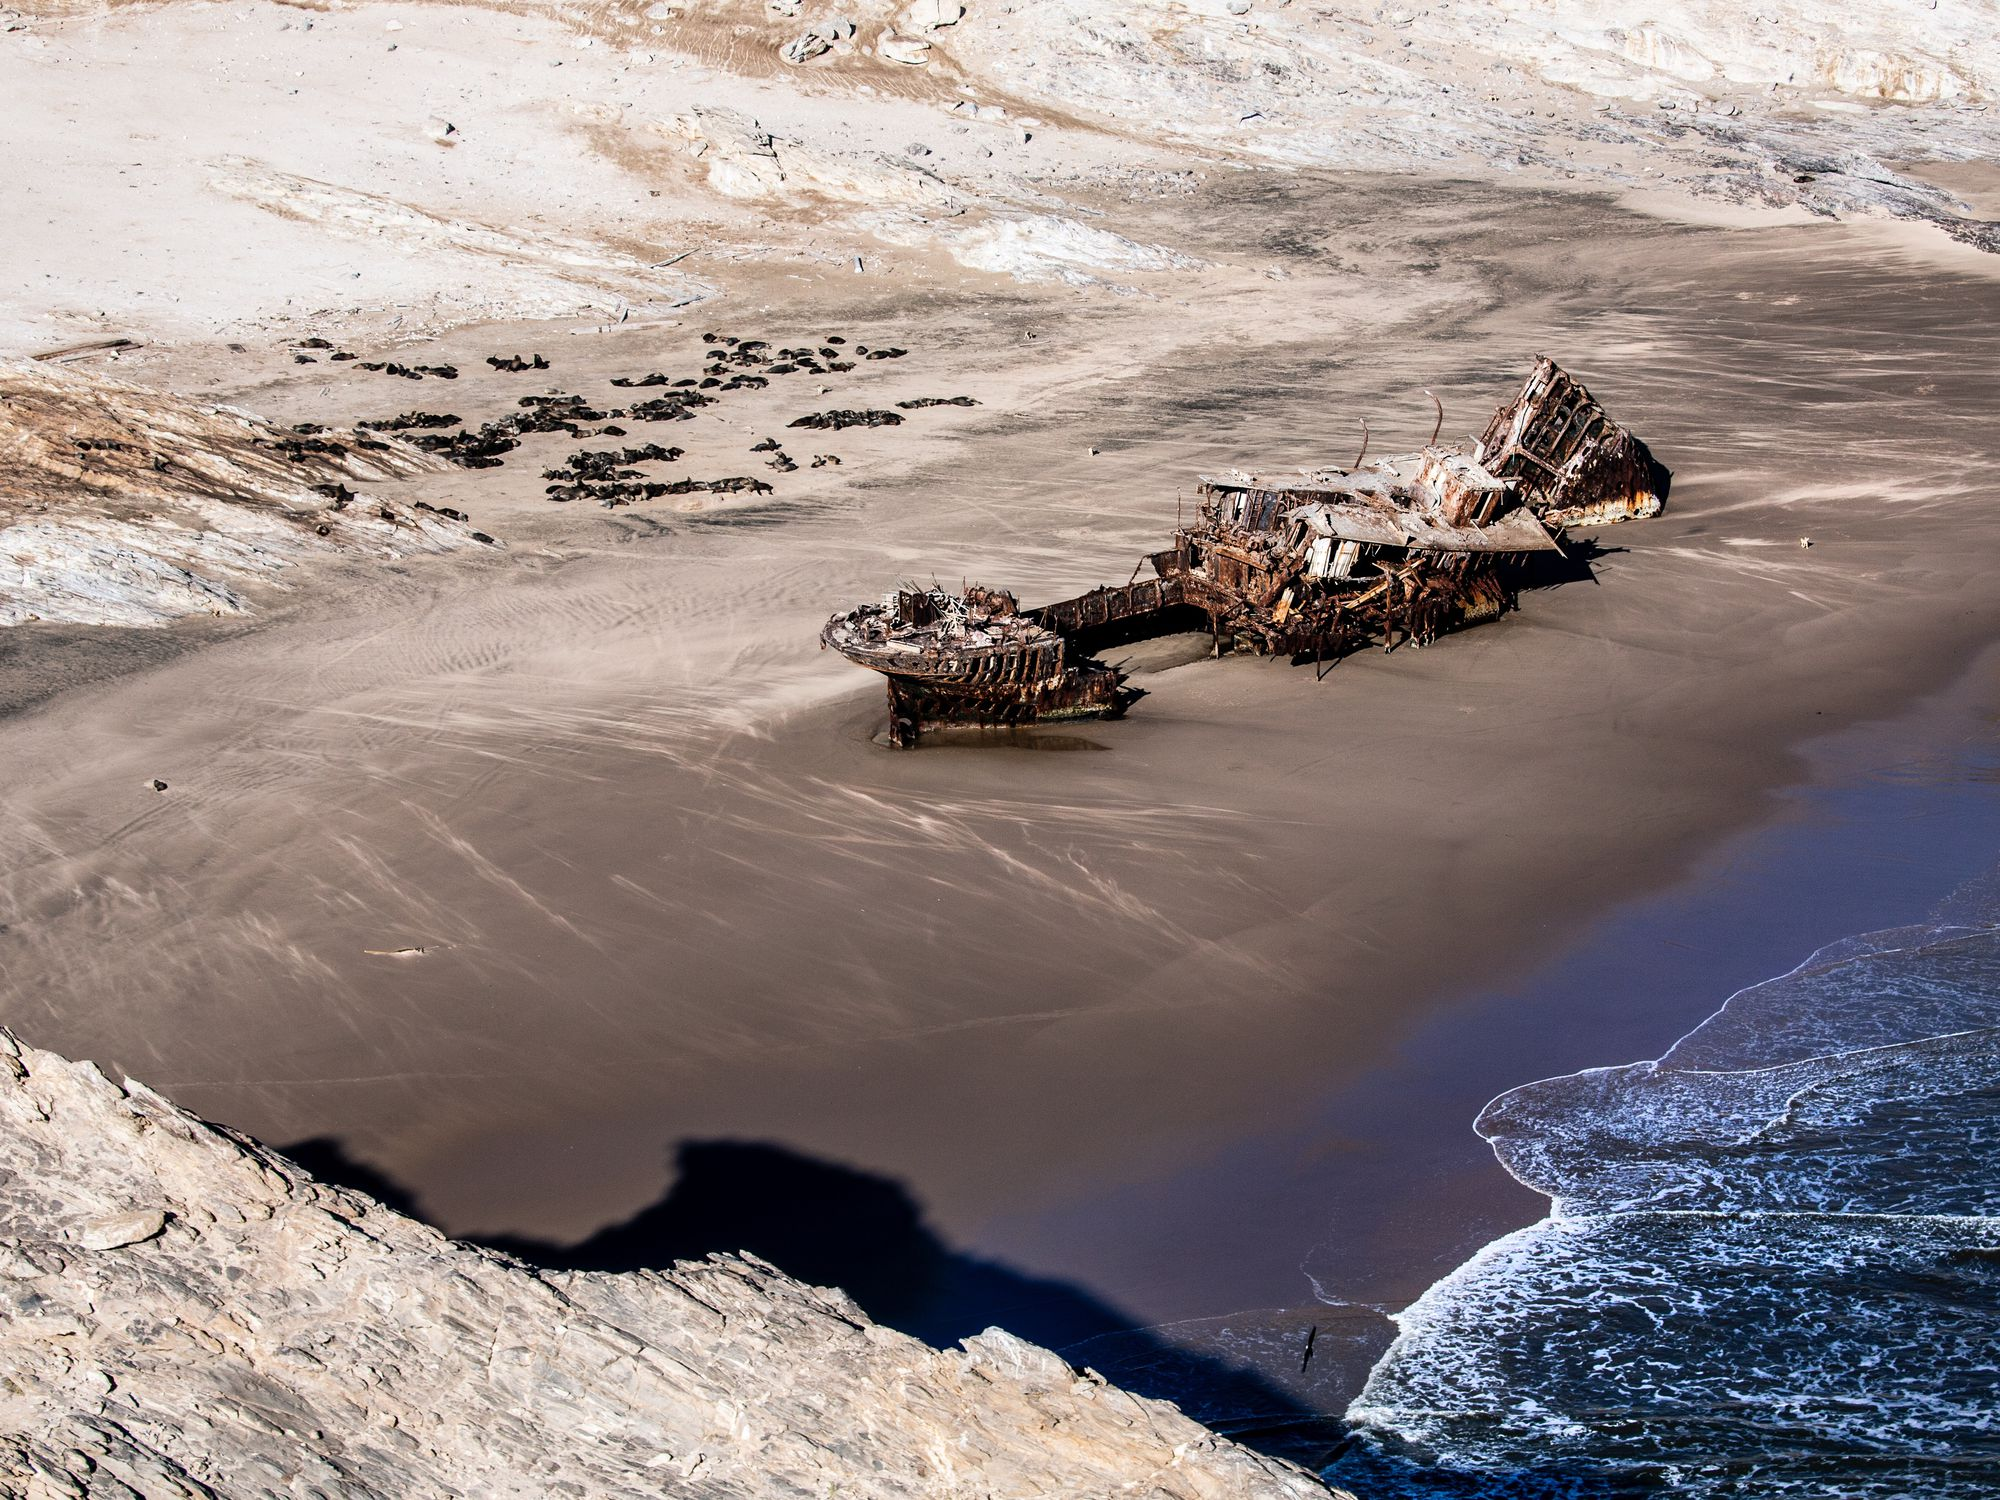 Otavi shipwreck, Spencer Bay, Sperrgebiet, Namibia